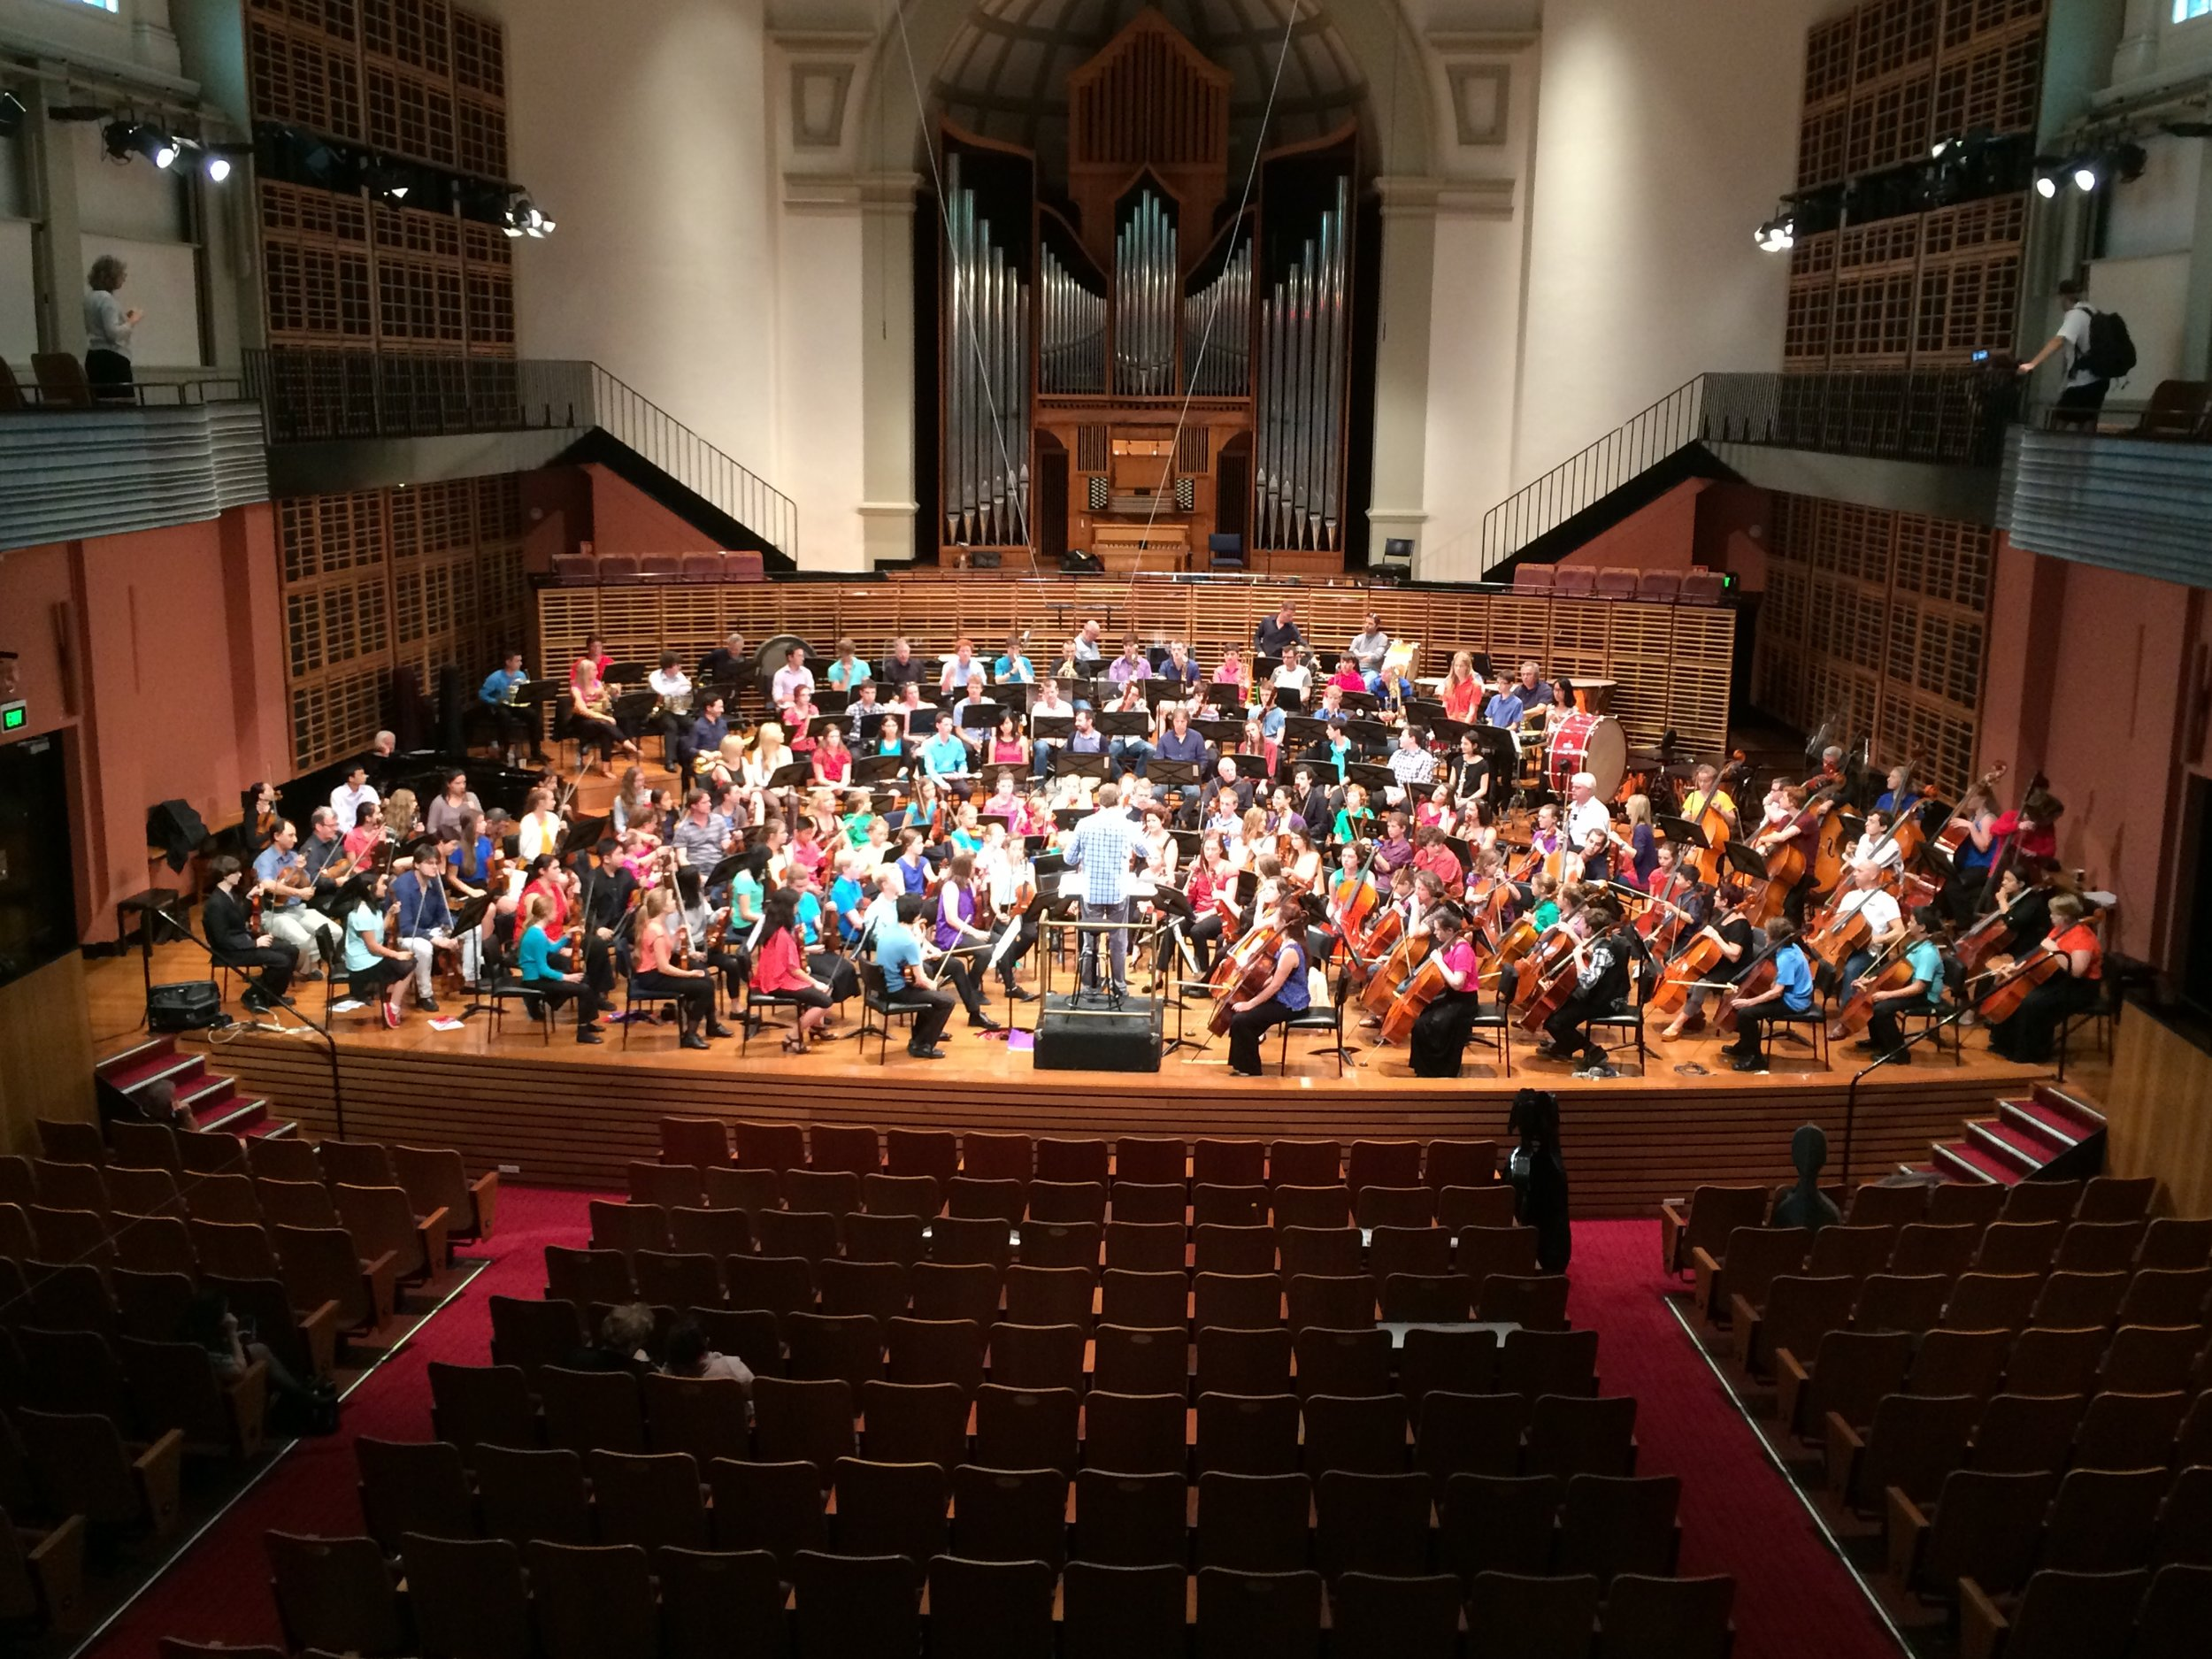 Regional Conservatorium students rehearse alongside 30 London Symphony Orchestra players in 2014.